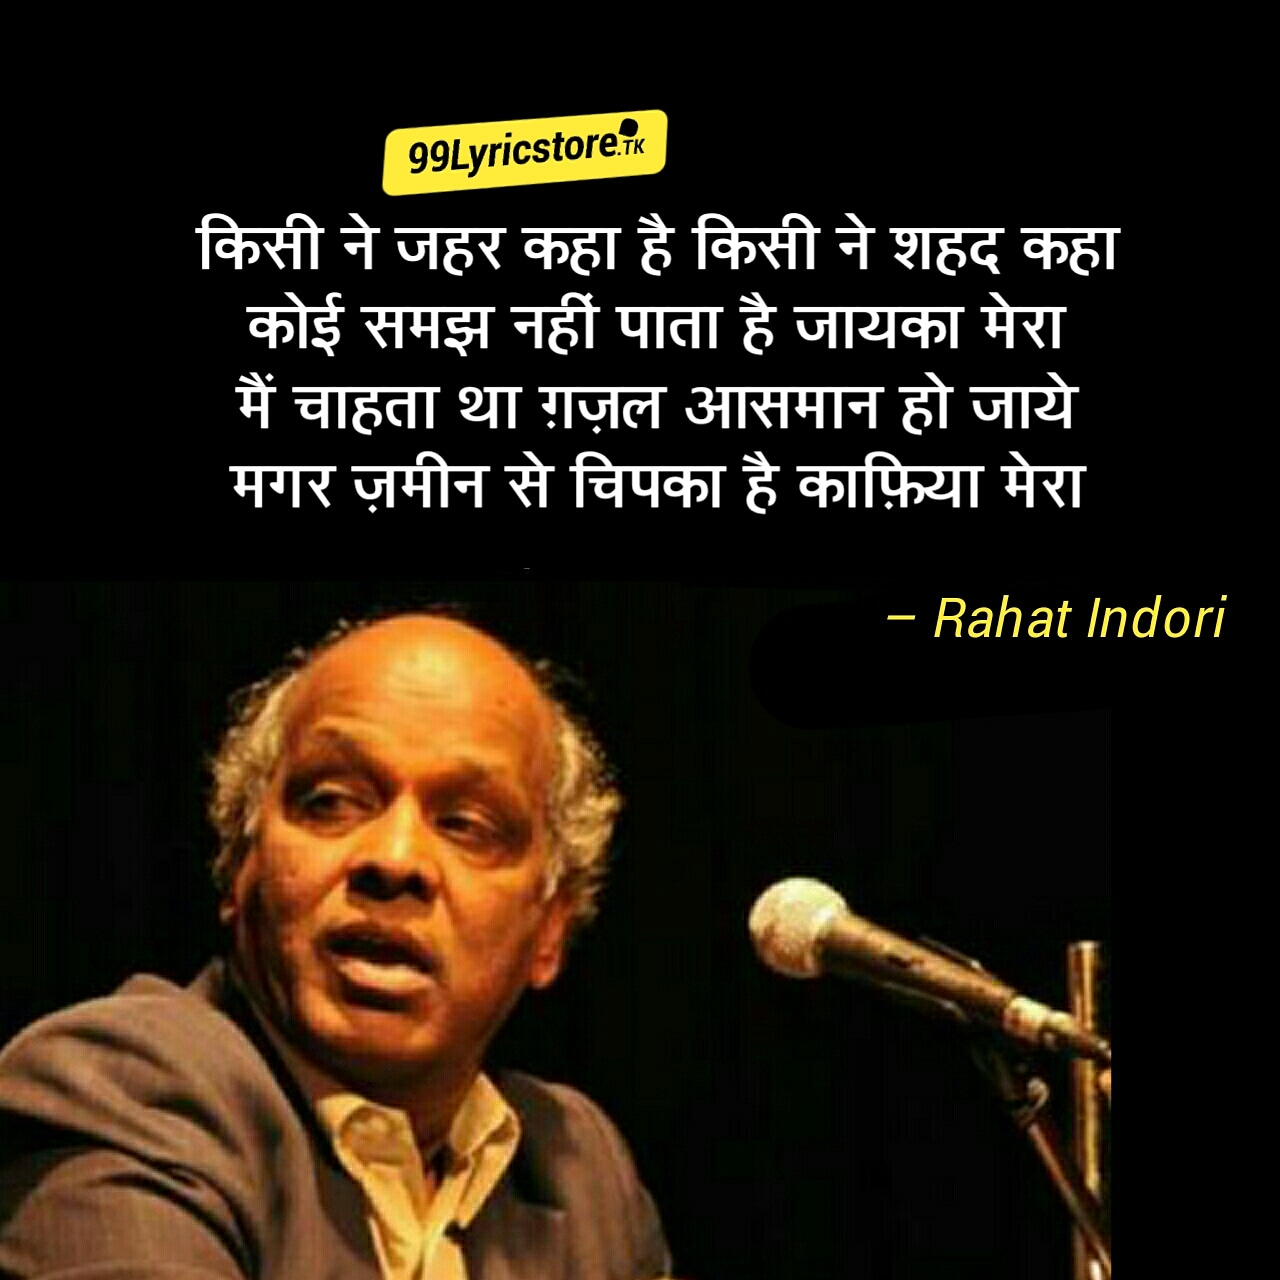 Dilon Me Aag Labon Par Gulab Rakhte Hai' written and performed by Rahat Indori. This poetry is best Ghazal and Shayari of Rahat Indori.